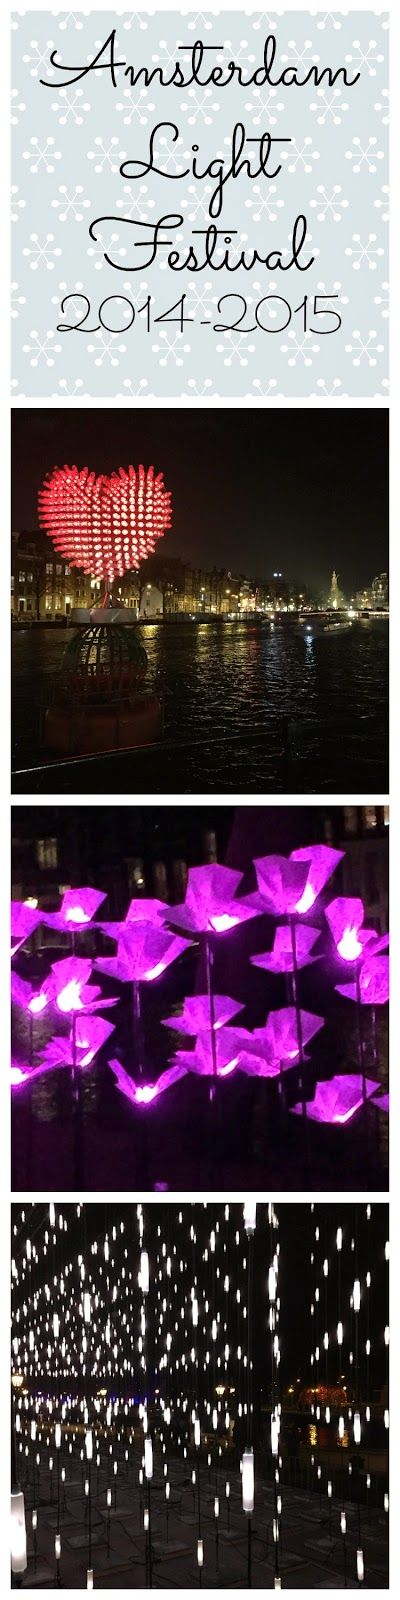 Diary of an Urban Housewife: Amsterdam Light Festival 2014-2015 The Ultimate Party Week 34